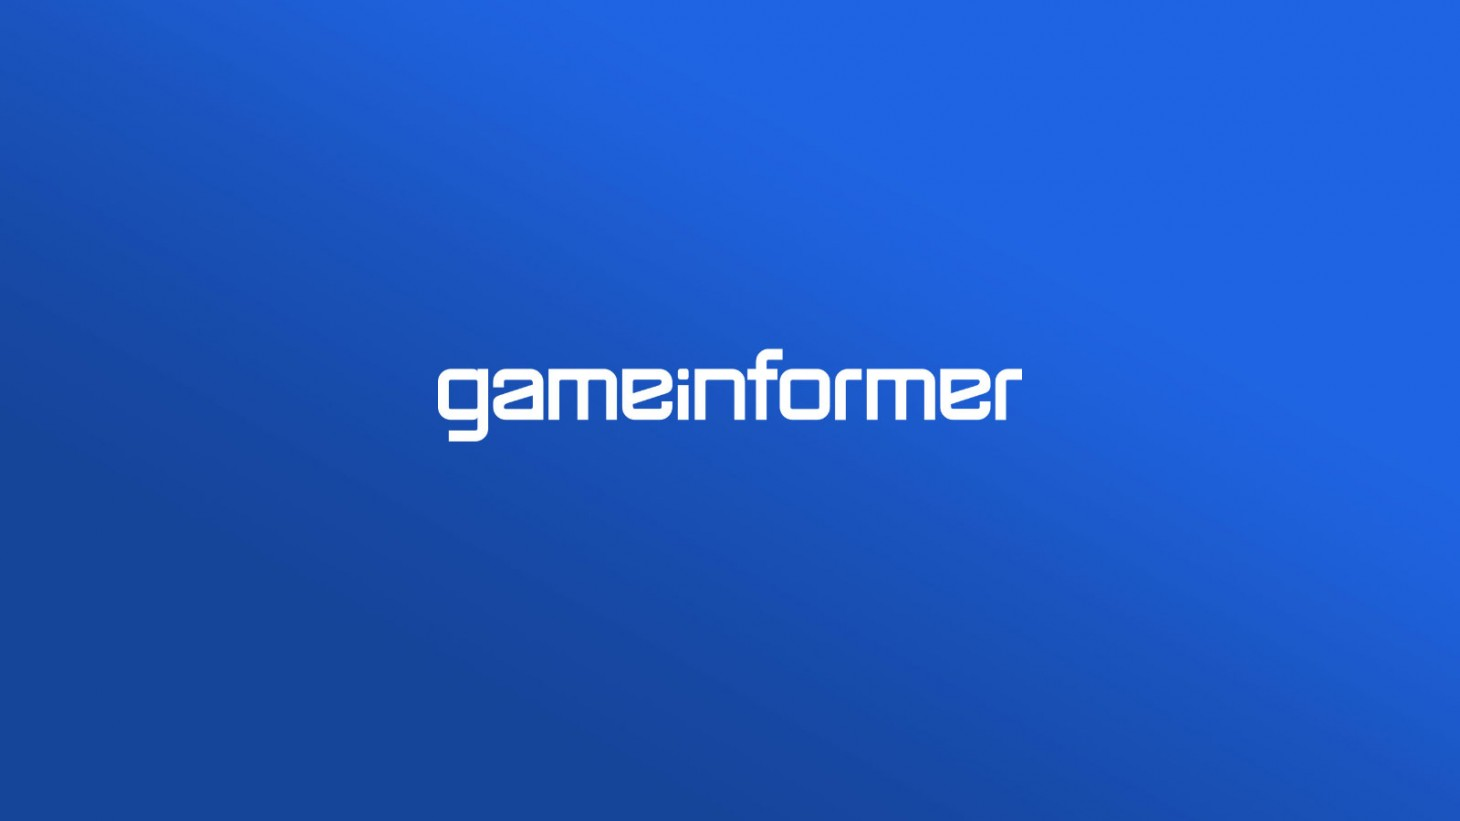 New Game Informer logo treatment